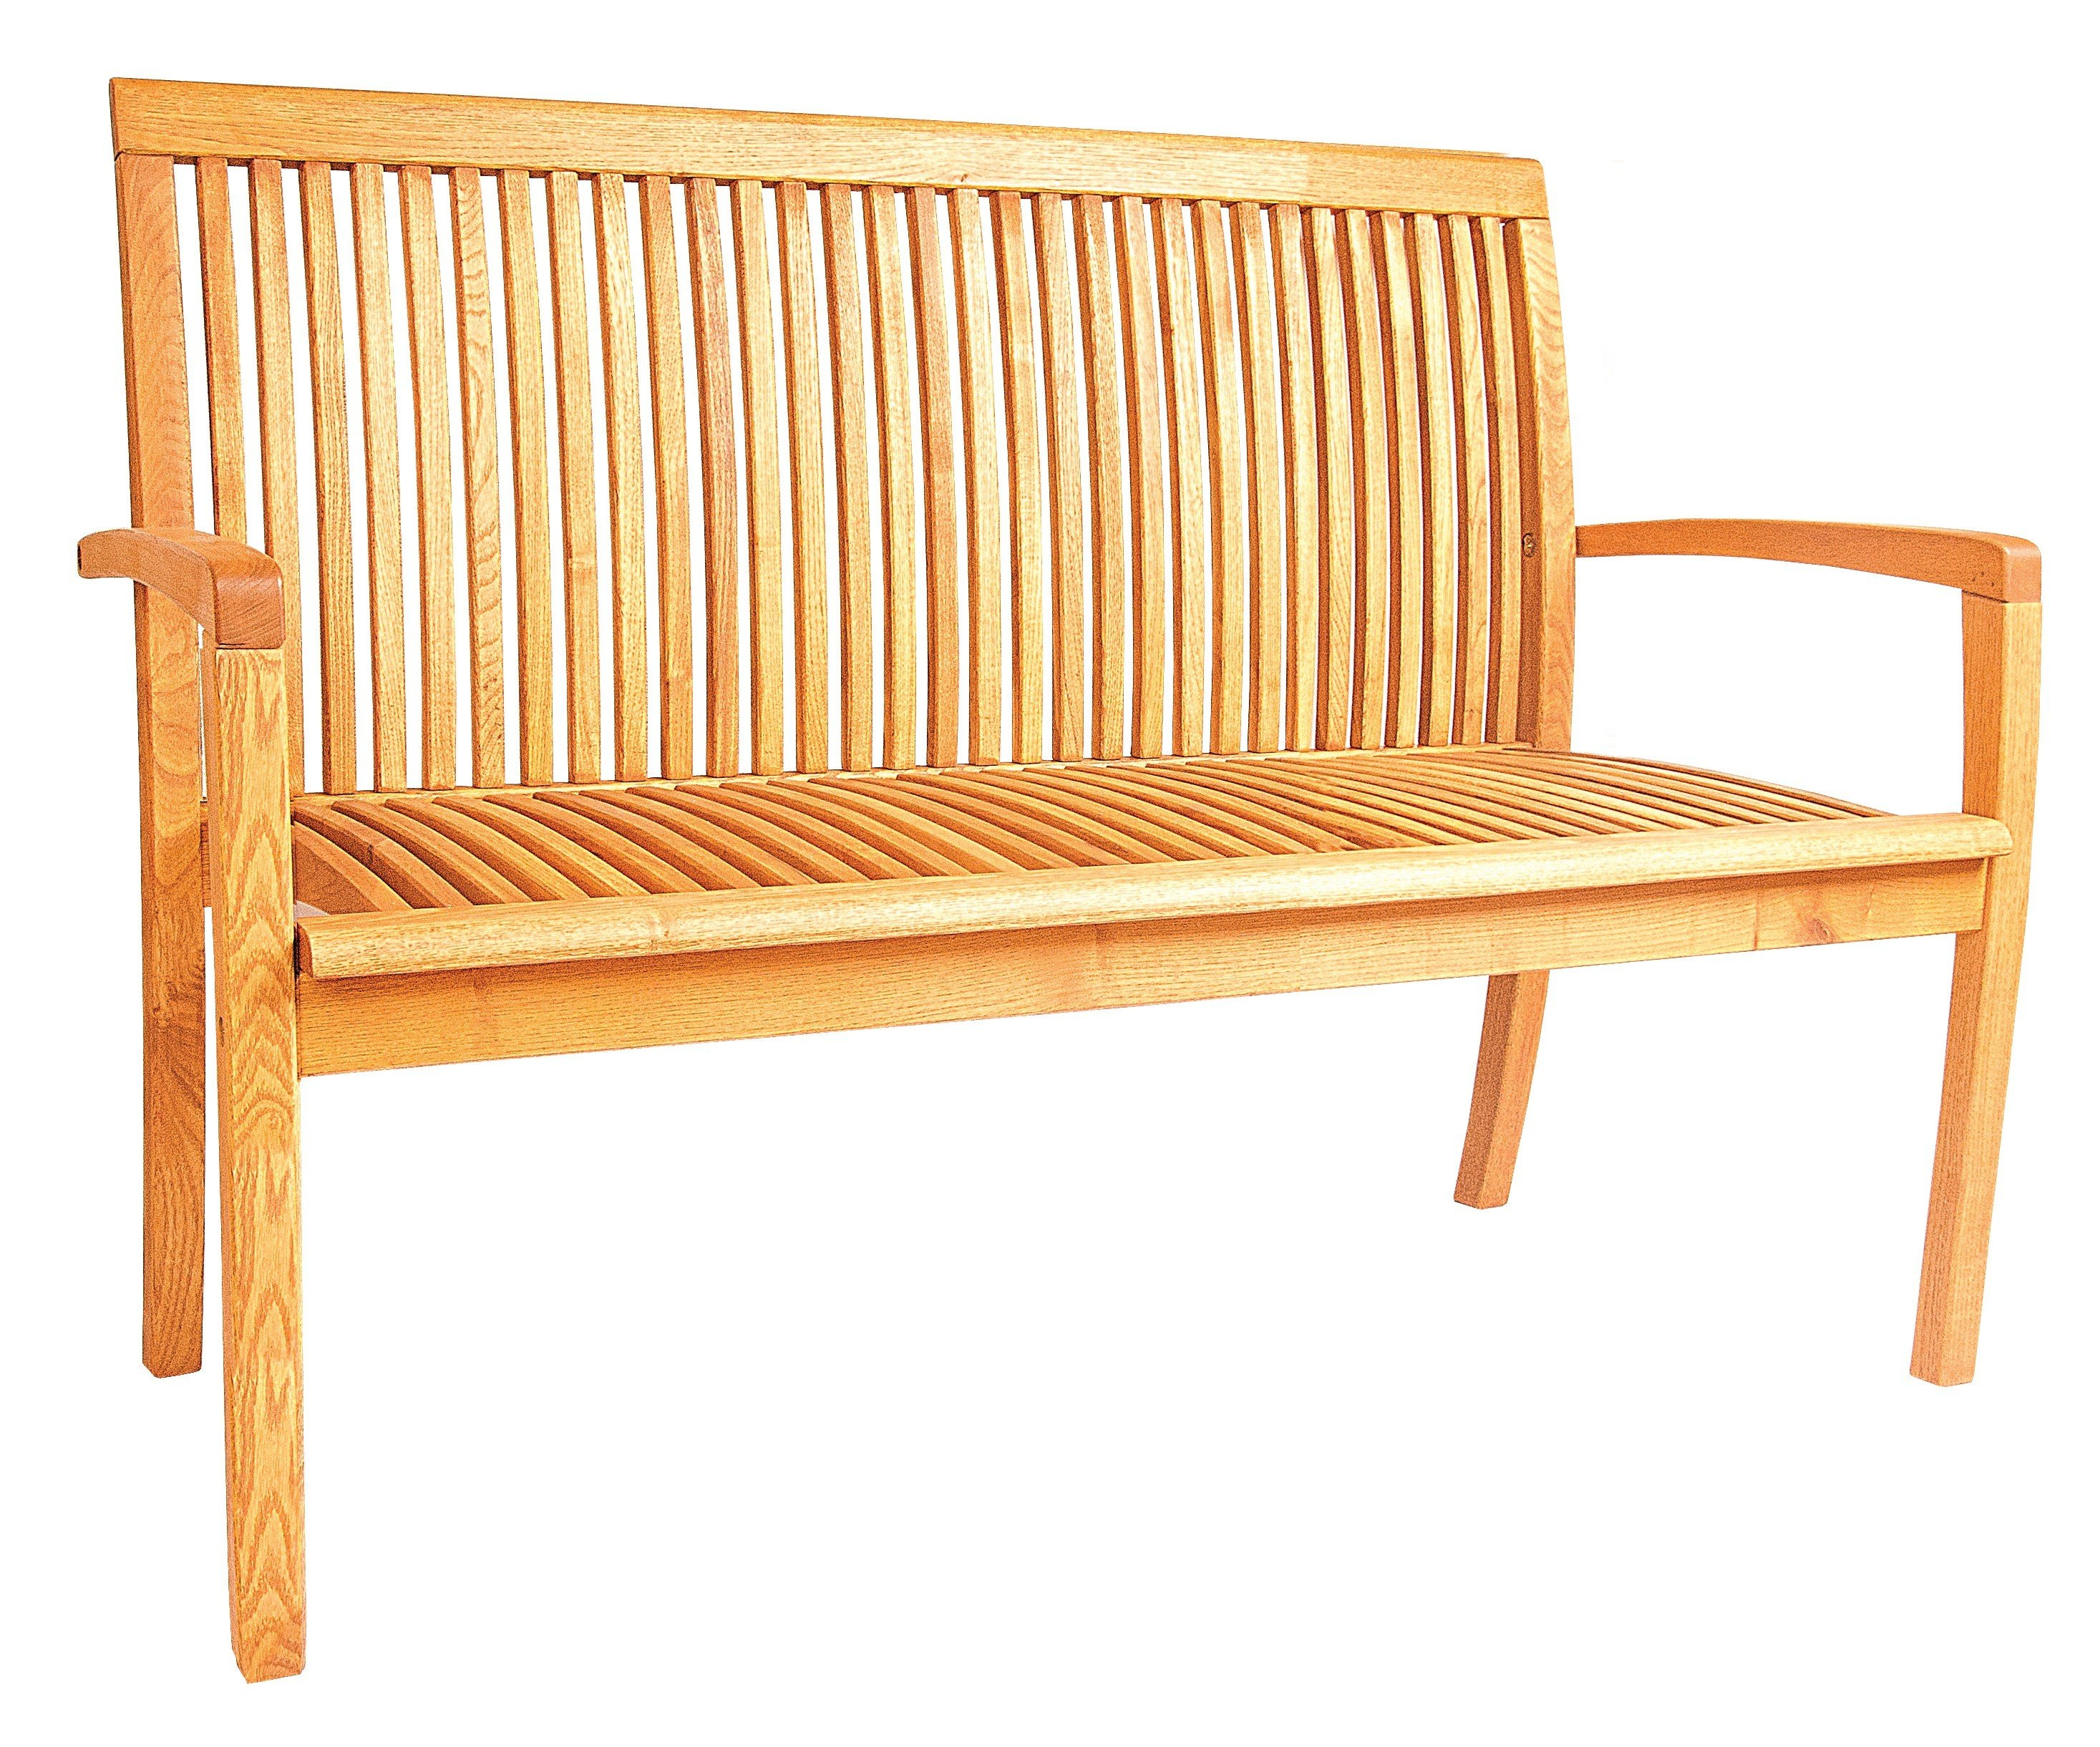 <p>Outdoor Furniture – Wooden Dining Collection Fuera.</p> <p> </p> <p>Fuera Furniture – Bench available in 2 sizes.</p> <p> </p> <p>Multi-purpose use within the hospitality industry as restaurant, café terrace furniture as well as domestic garden furniture in formal such as weddings or informal setting.</p>